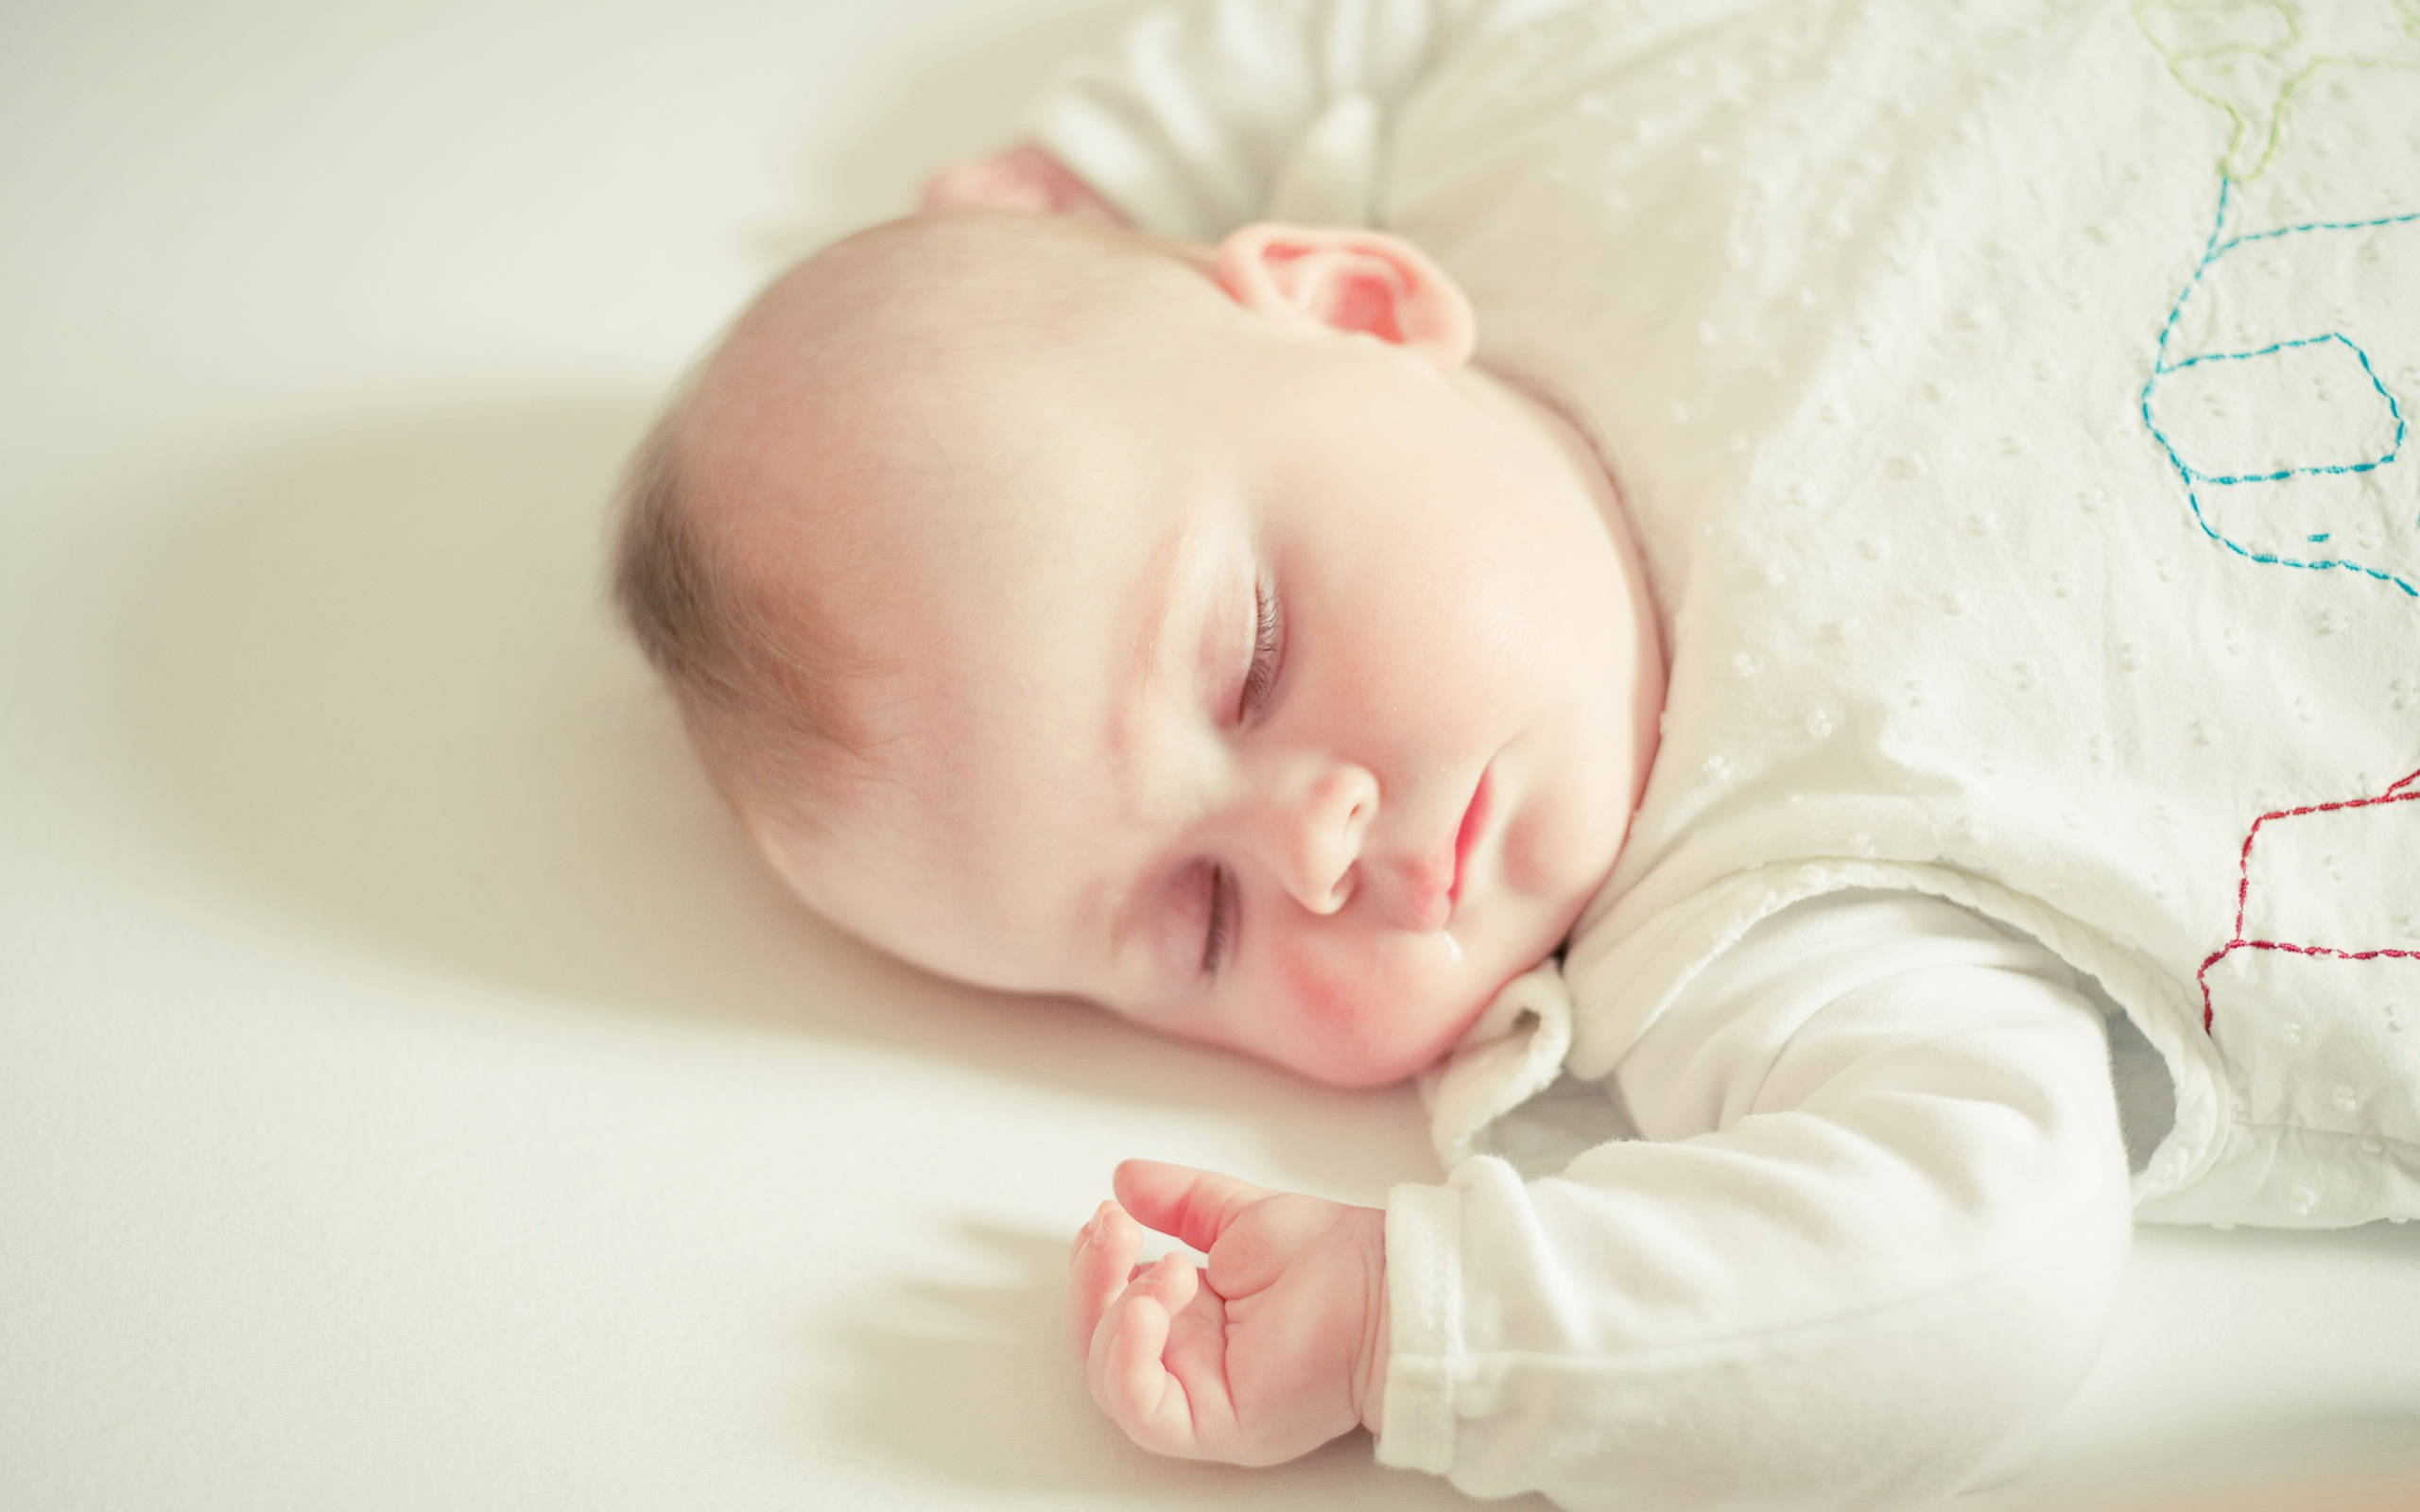 Cute Sleeping Baby Hd Wallpaper, Cute Sleeping Baby Desktop Wallpaper Wallpaper